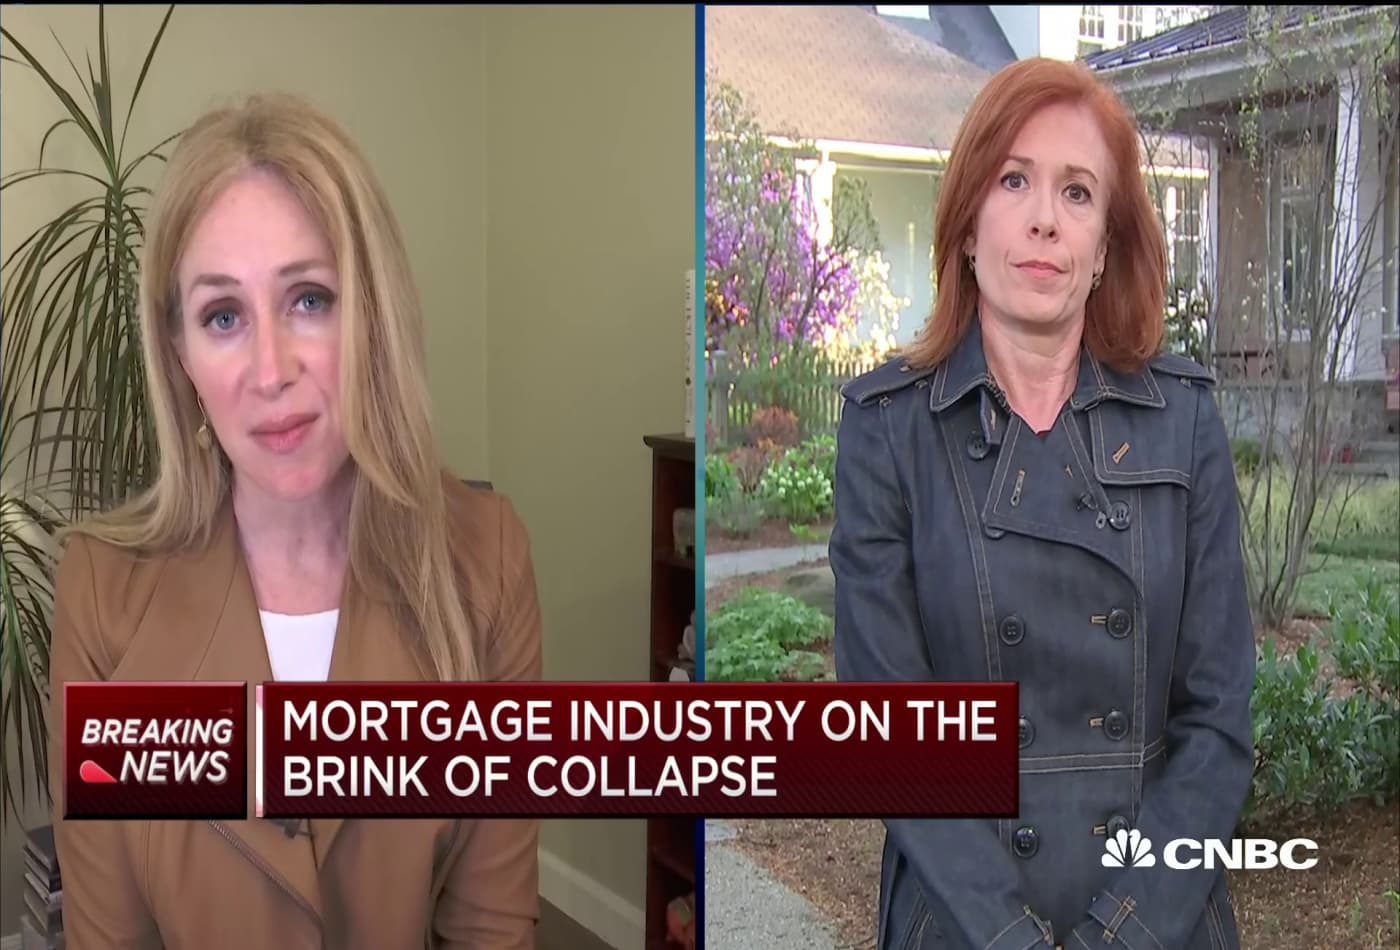 Mortgage industry on the brink of collapse